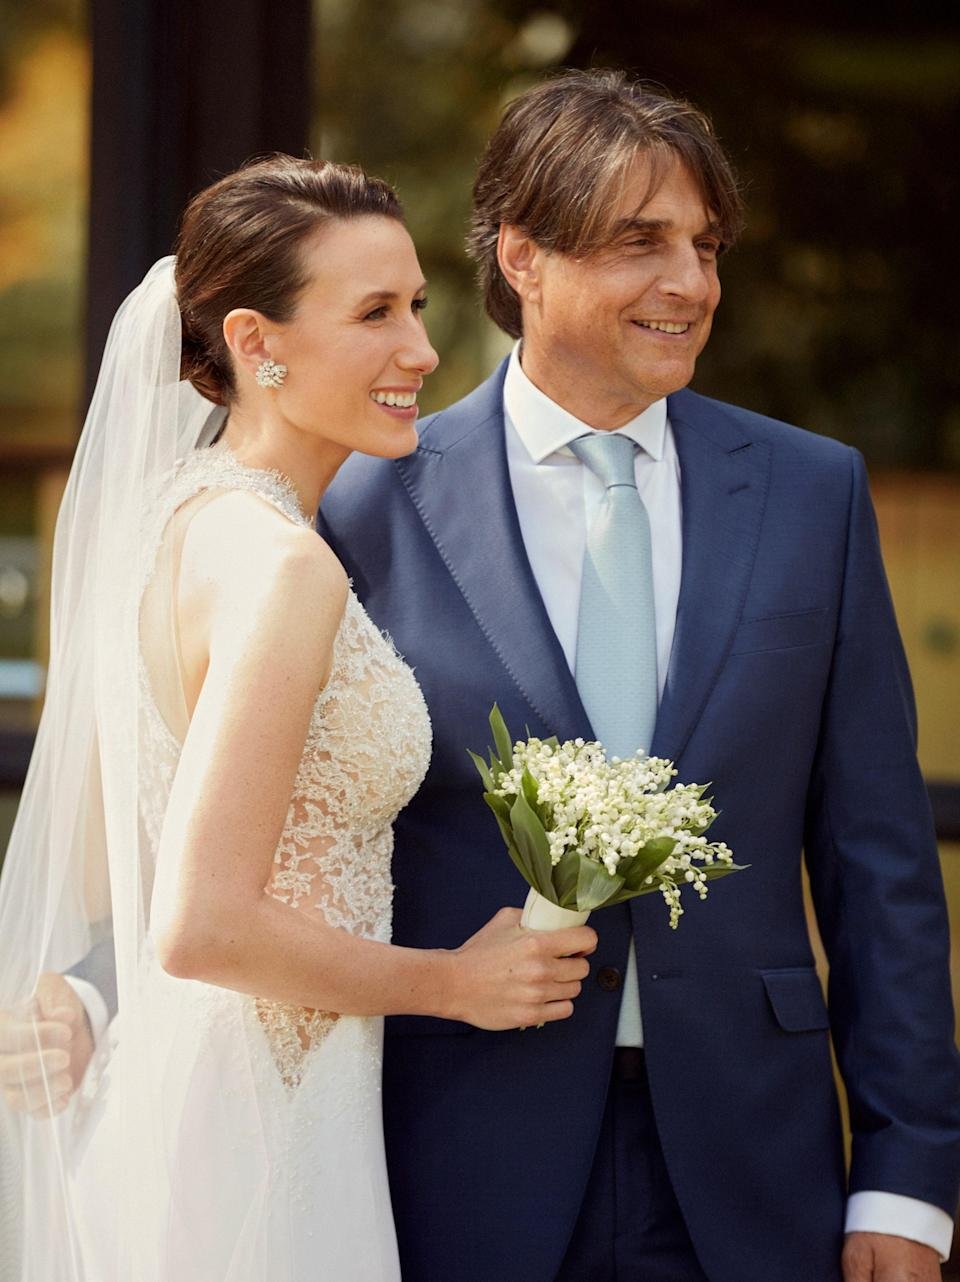 """The lace on my dress was covered with seed pearls and had the lyrics from our song inscribed that read, """"Let's Fall In Love"""" in such delicate letters that only I knew. Robert's suit is from his longtime friend and tailor, Nigel Curtiss. I also surprised Robert by having his tailor embroider a secret message inside his jacket."""